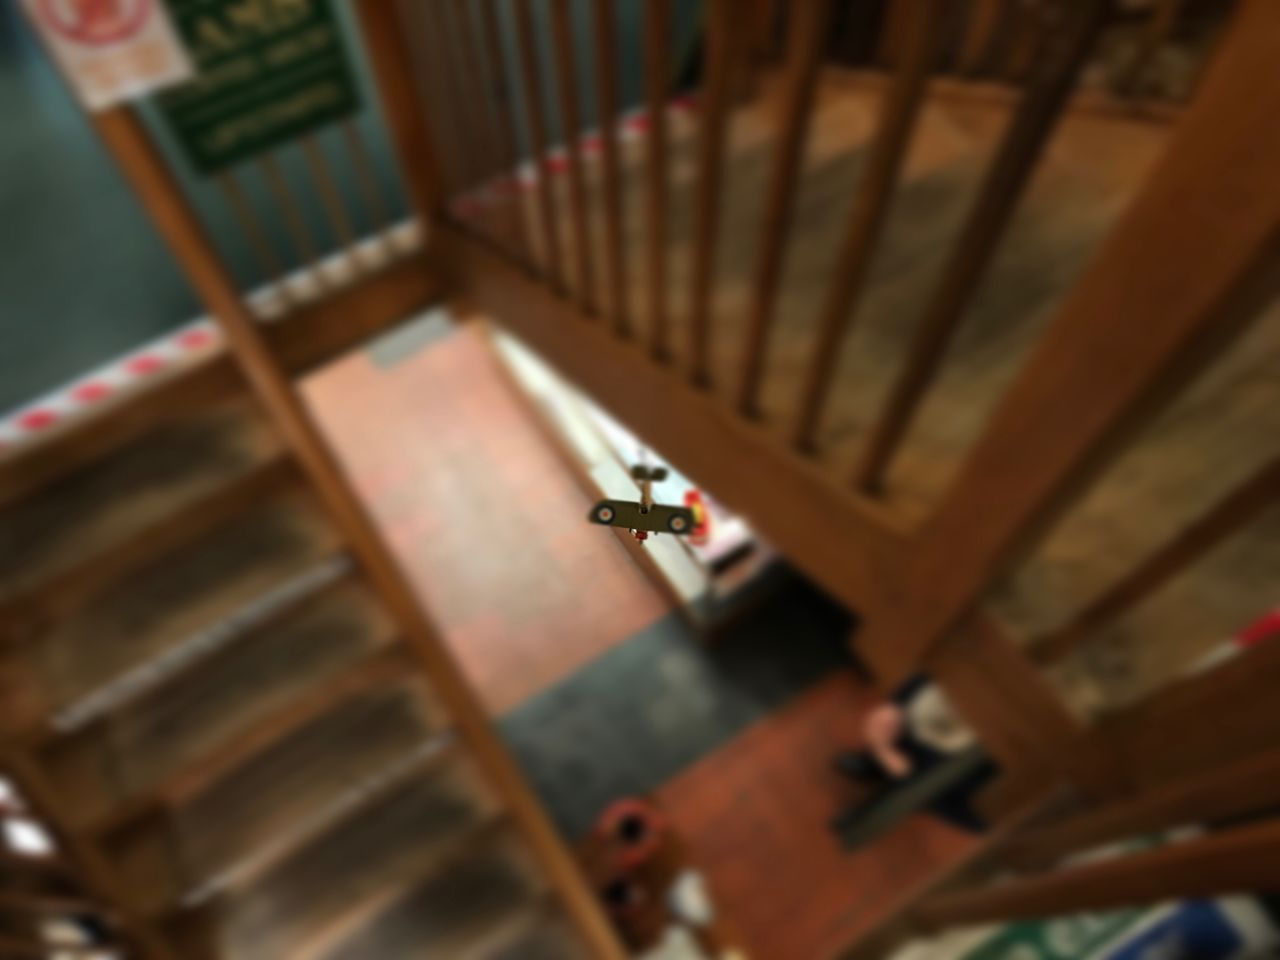 indoors, no people, old-fashioned, close-up, musical instrument, day, tilt-shift